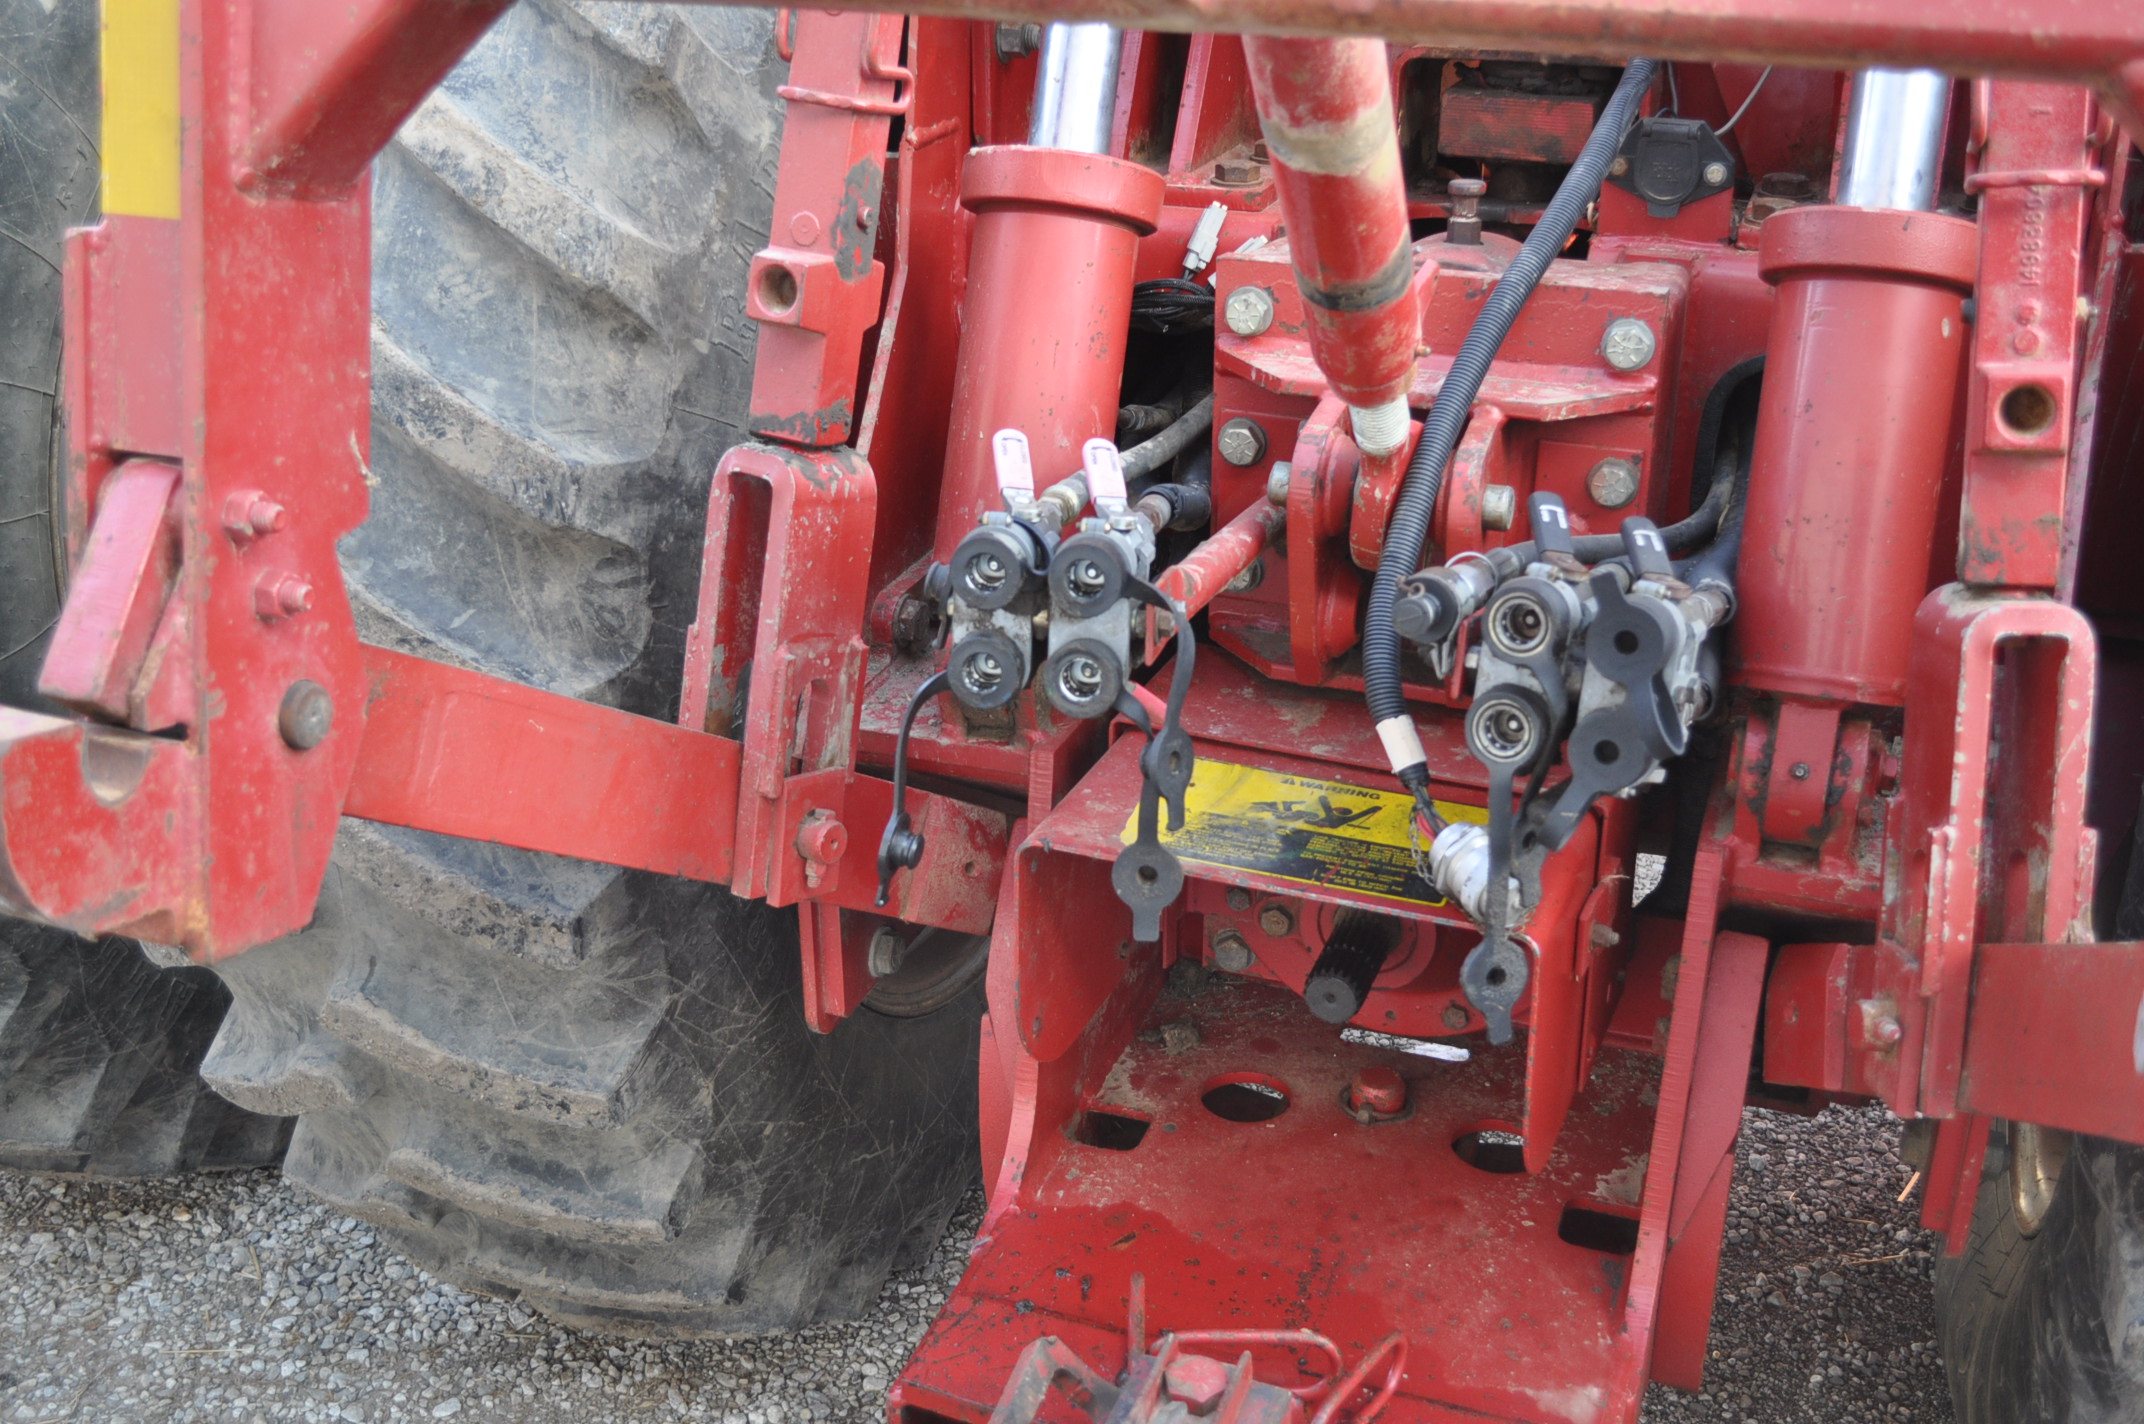 Case IH 9230 4WD tractor, 18.4-38 duals, power shift, skip shift, 4 hyd remotes, 3pt, quick hitch, - Image 14 of 23